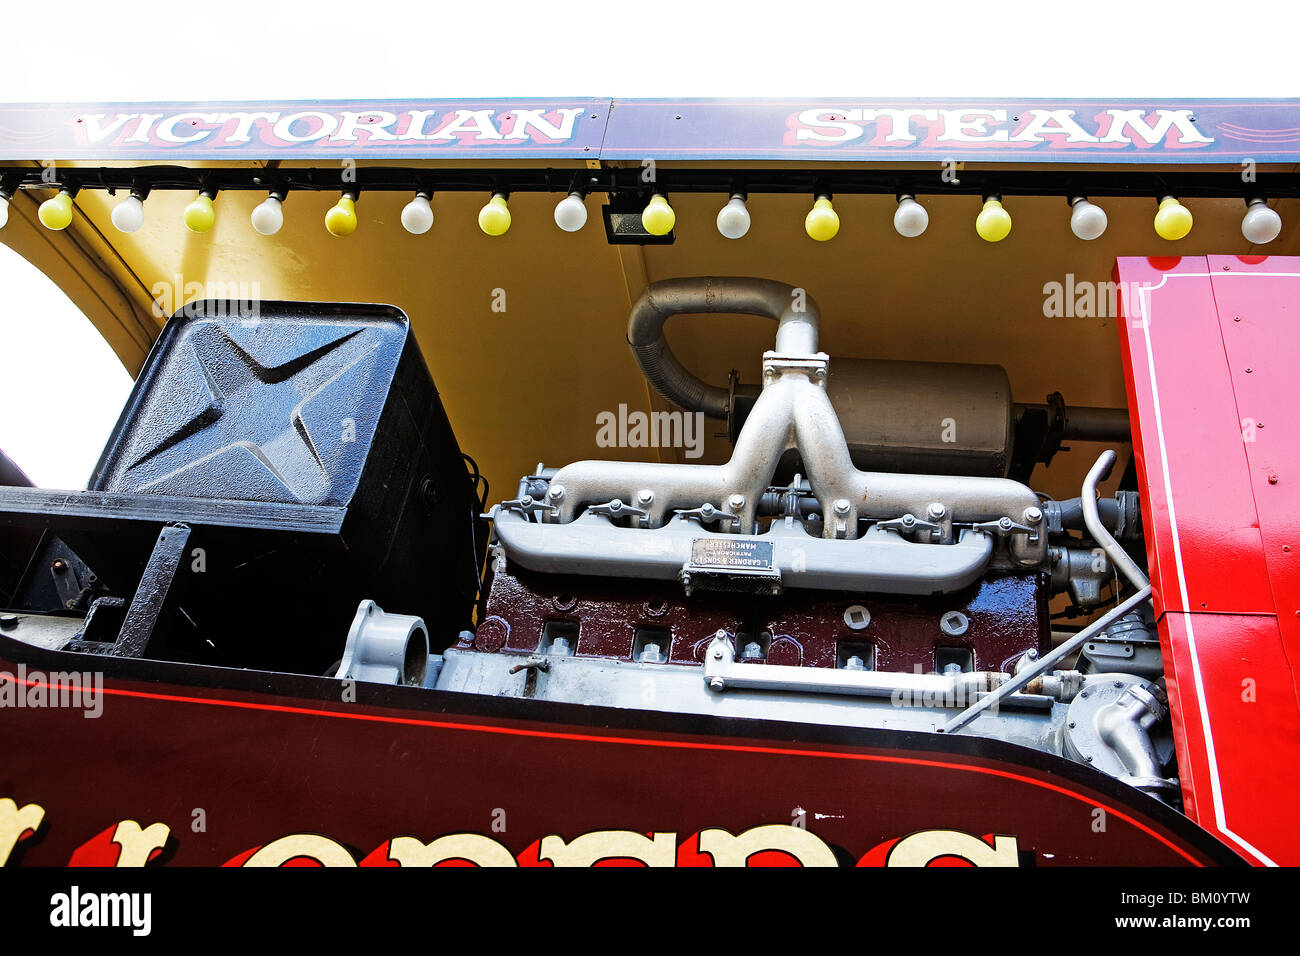 A large Scammell vehicle that is fitted with a generator for a fairground ride at Tatton Hall - Stock Image